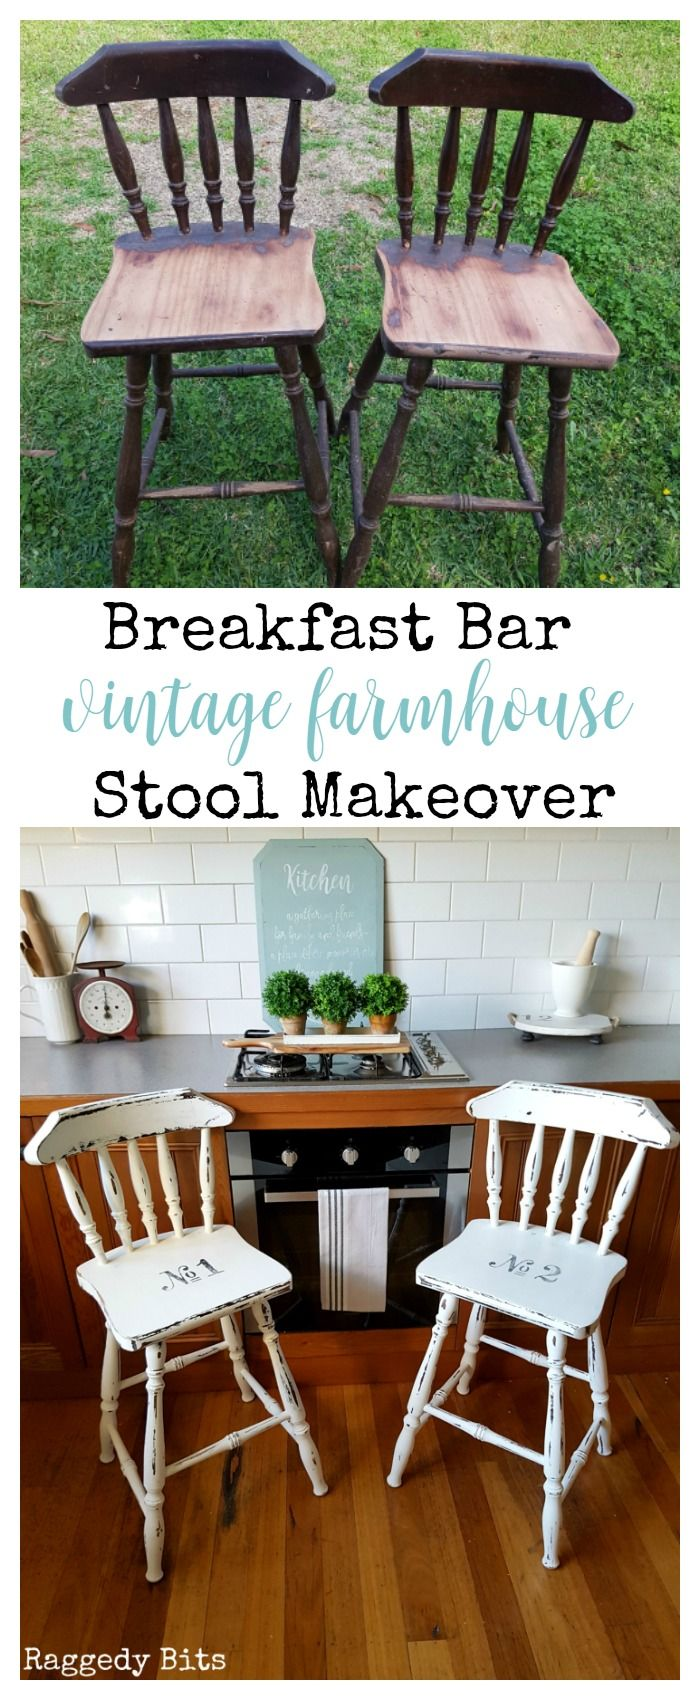 Waste Not Wednesday-50 Raggedy Bits Projects for the week   Breakfast Bar Vintage Farmhouse Stool Makeover   www.raggedy-bits.com